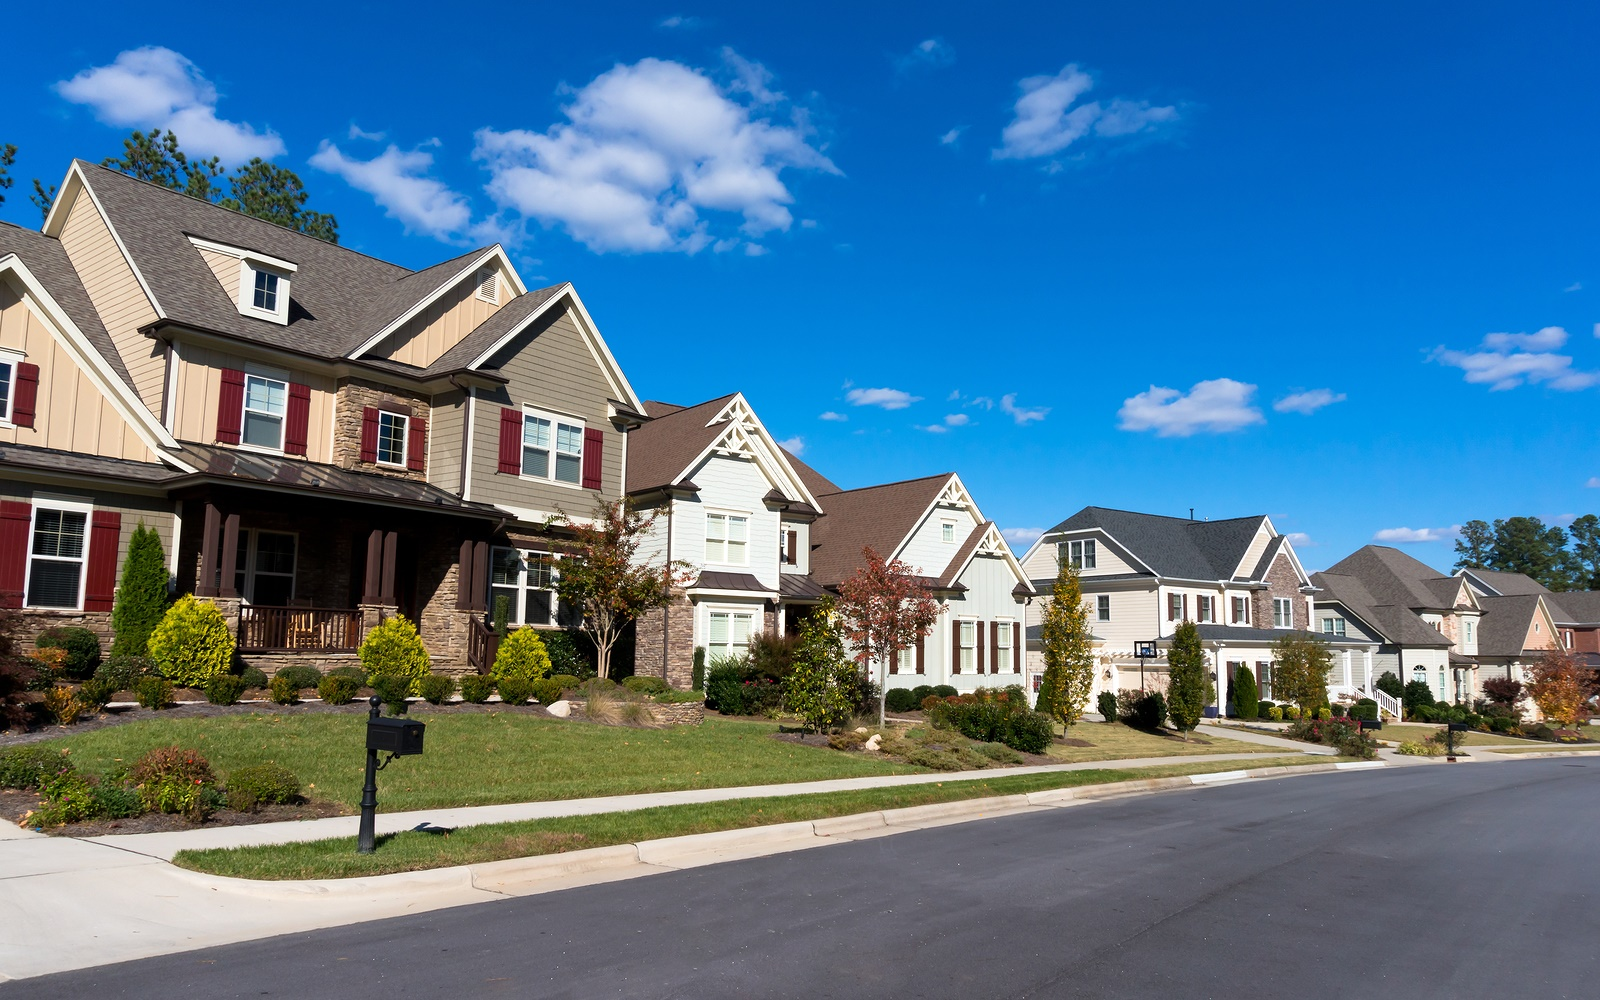 buying_a_home_in_an_hoa_neighborhood_can_be_a_great_move